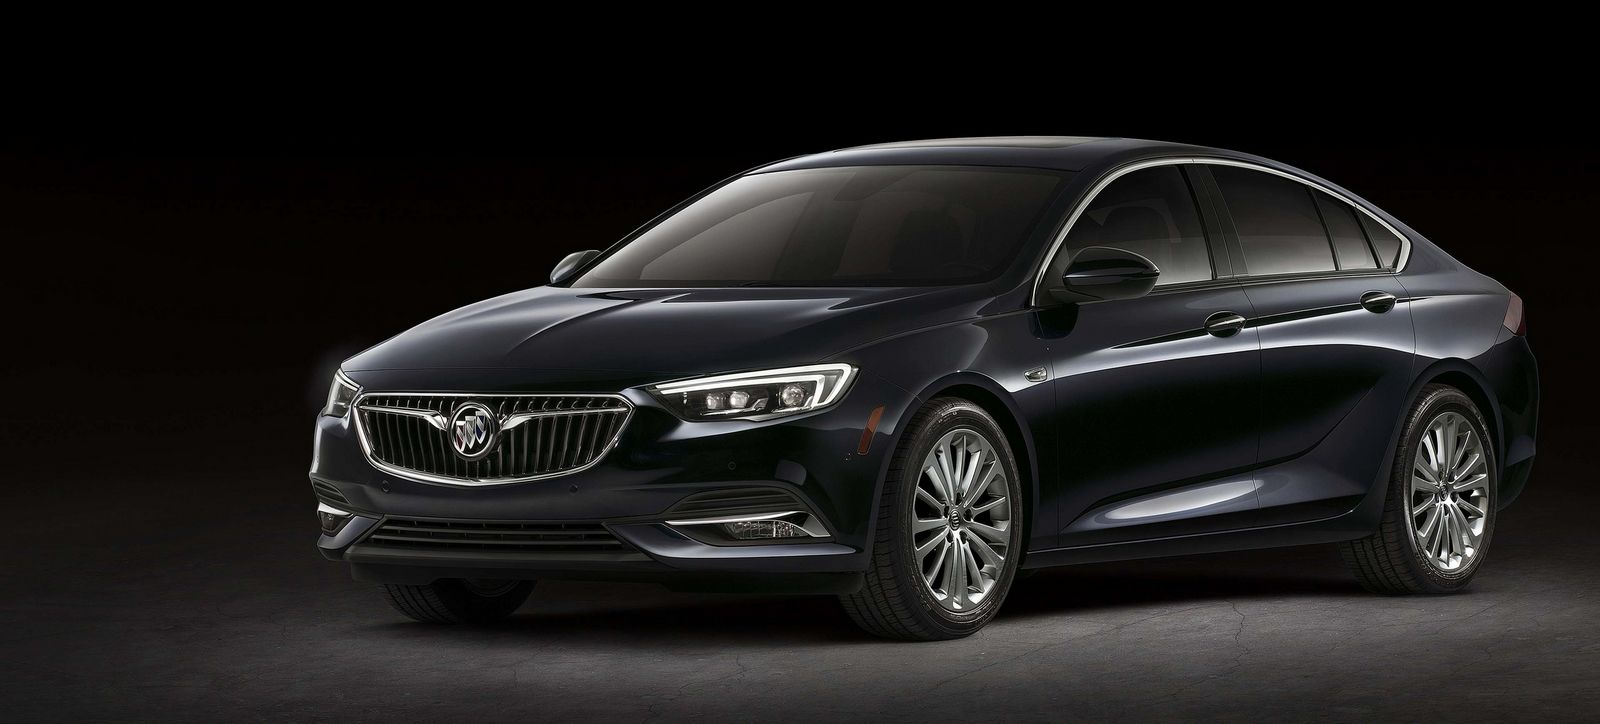 2018 buick regal sportback tourx wagon unveiled. Black Bedroom Furniture Sets. Home Design Ideas